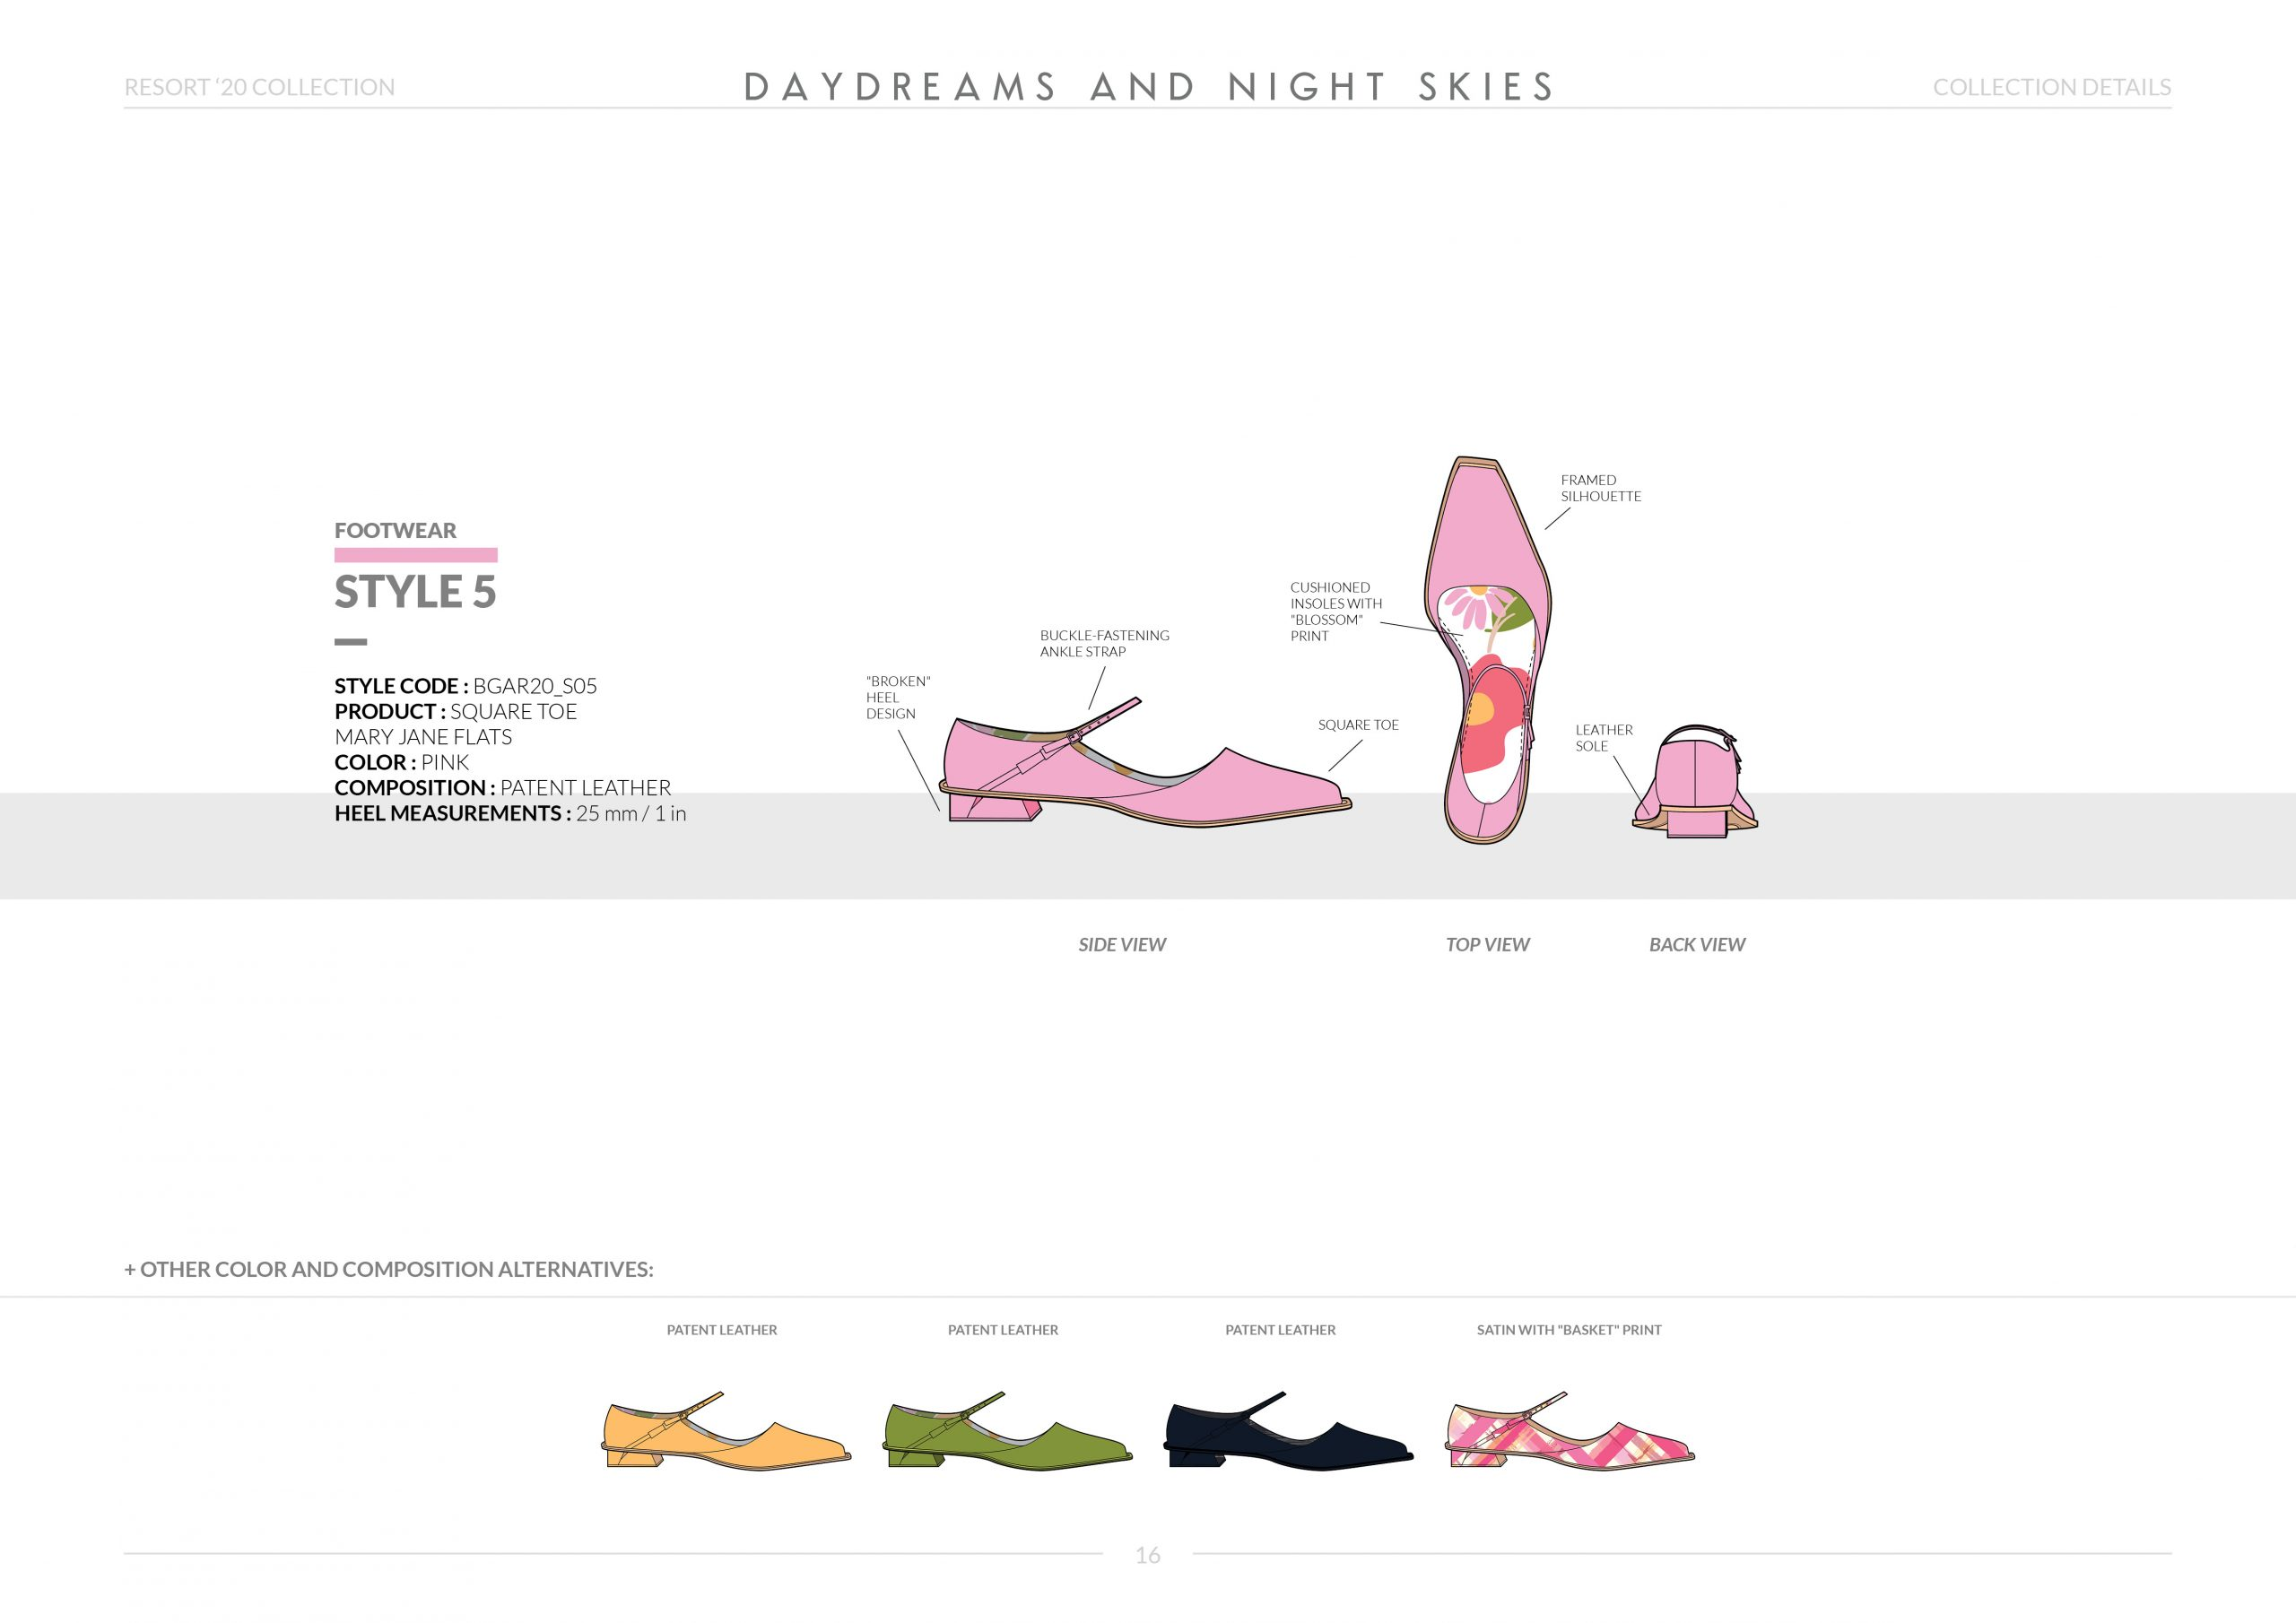 Resort-20 Womens Footwear Collection Details: Style 5